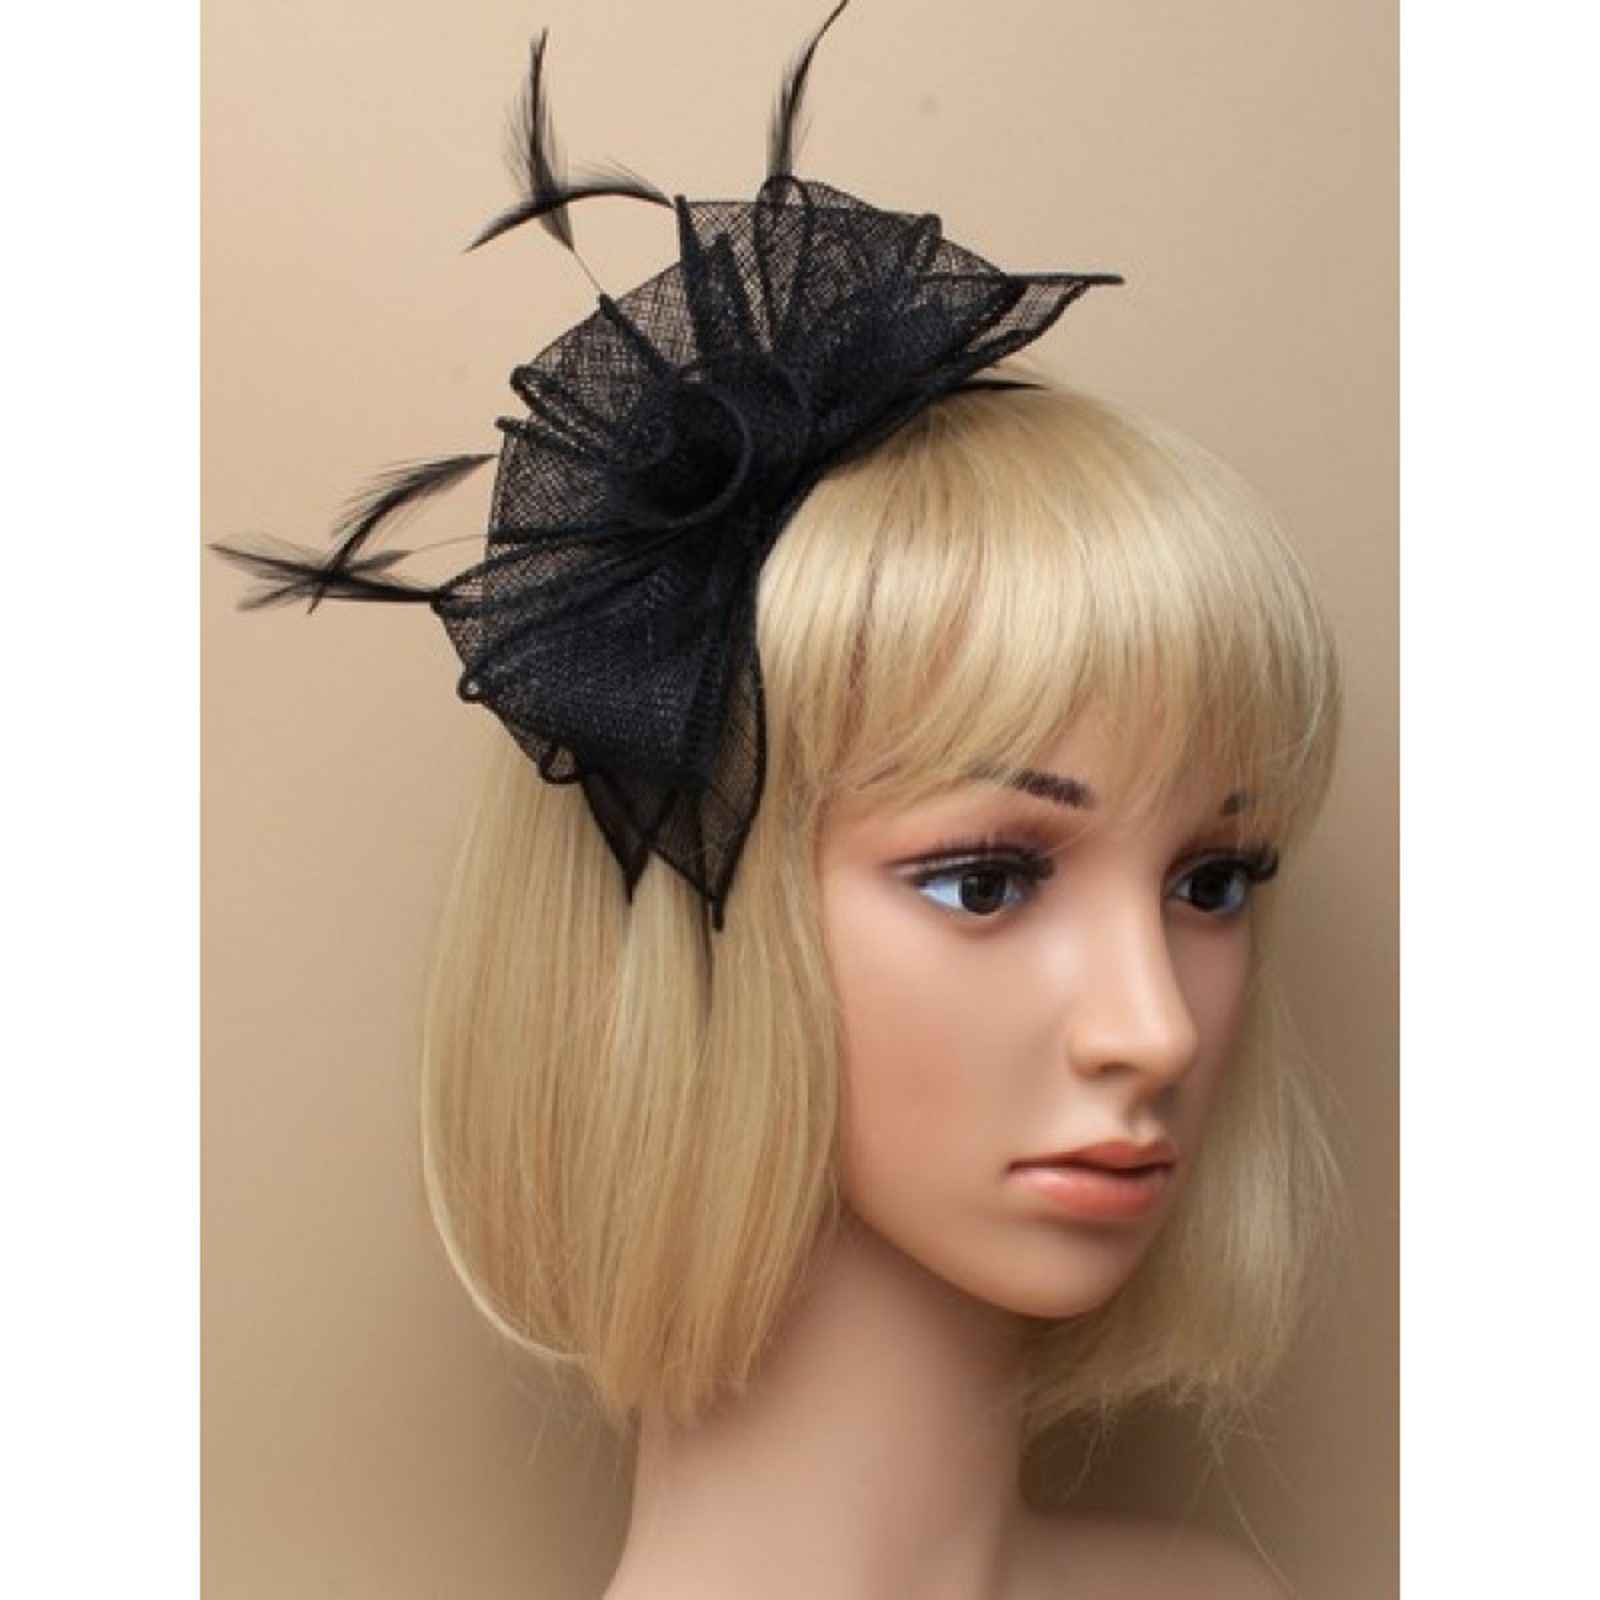 Arranview 5912 black fascinator